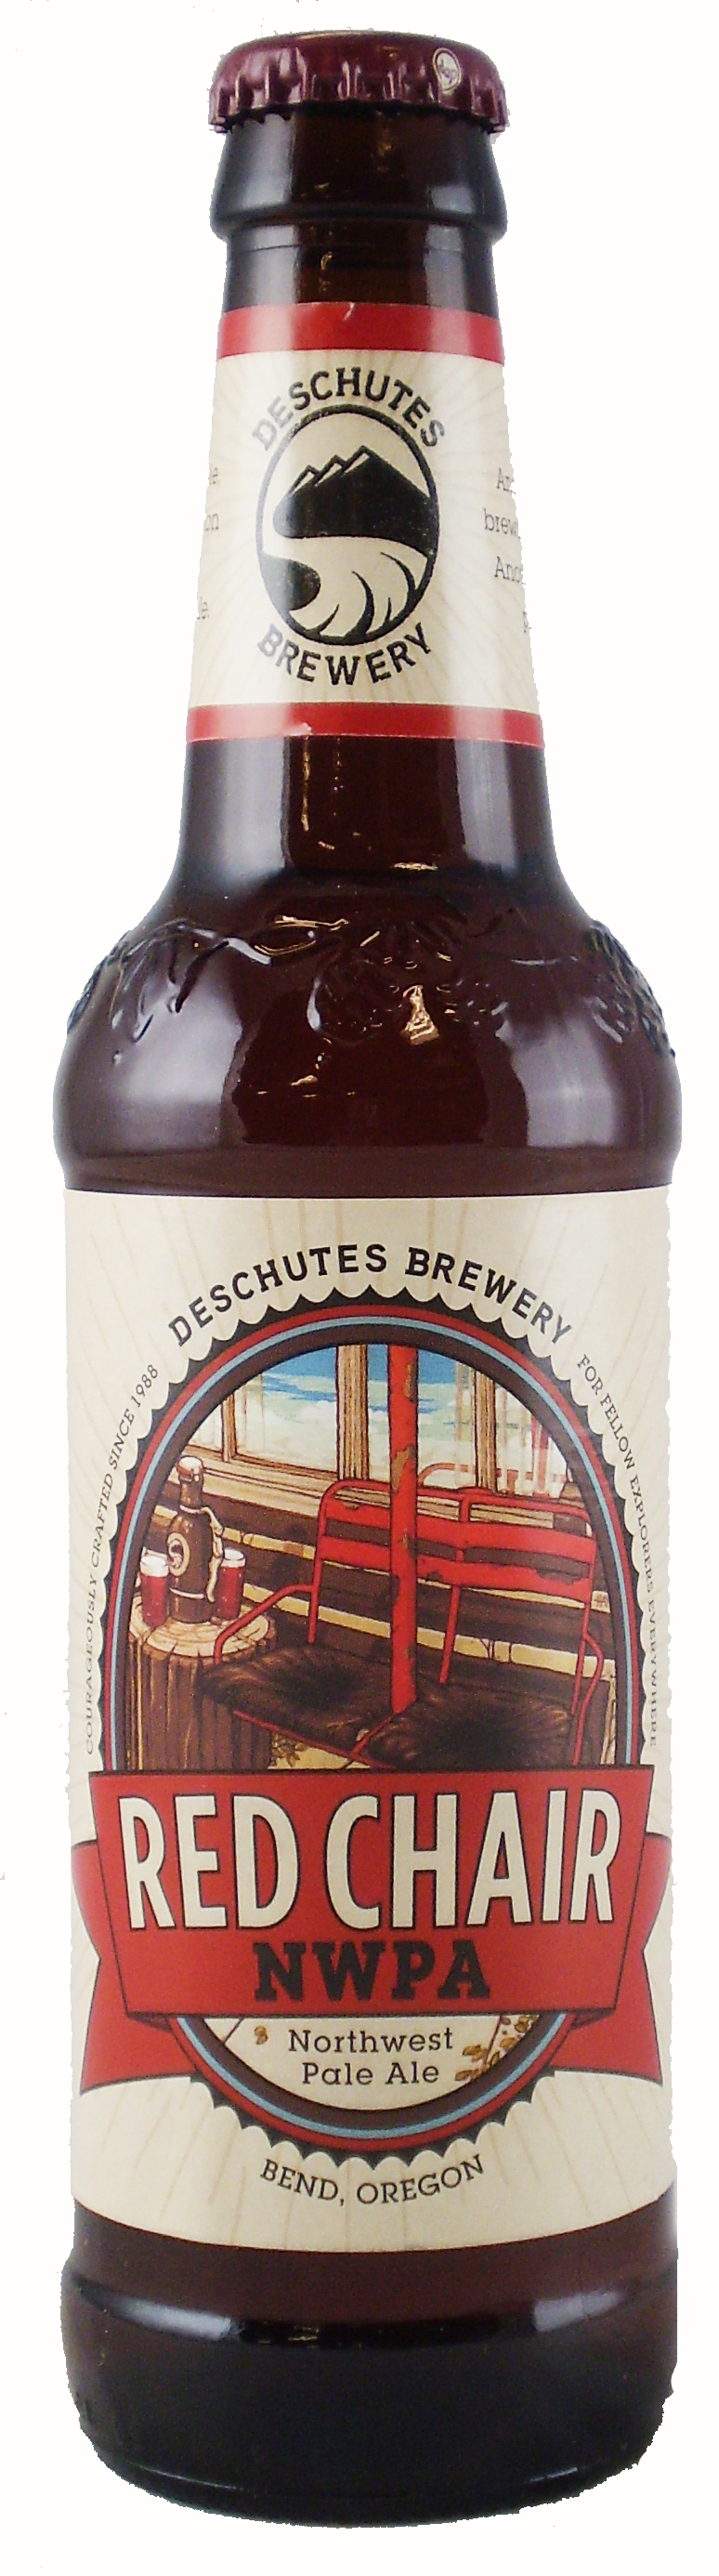 Deschutes Red Chair NWPA